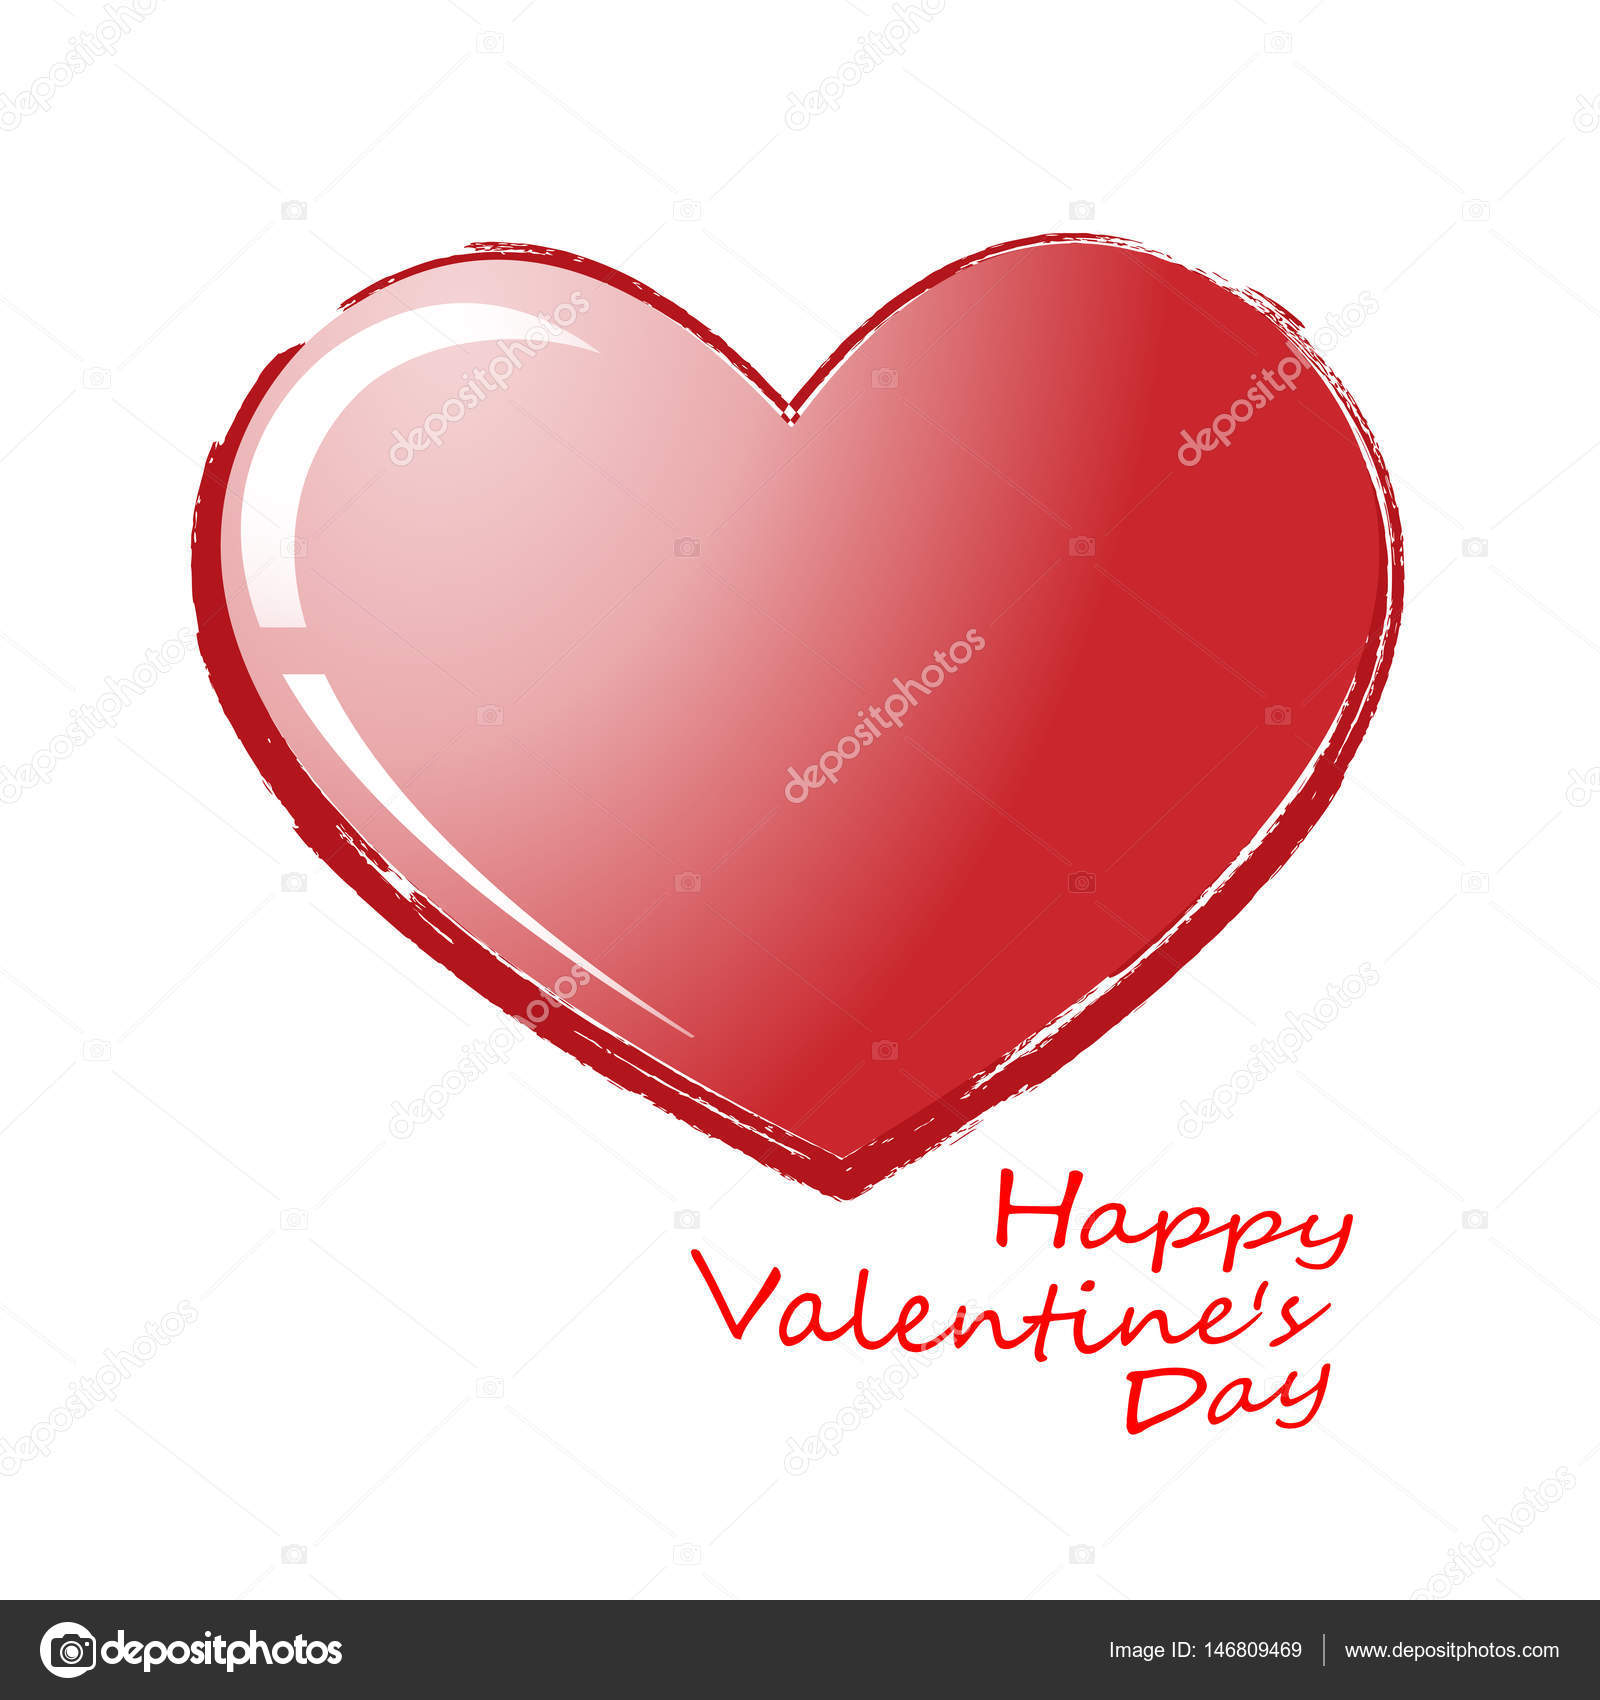 Big Red Heart Isolated On Transparent Background. Realistic Romantic ...